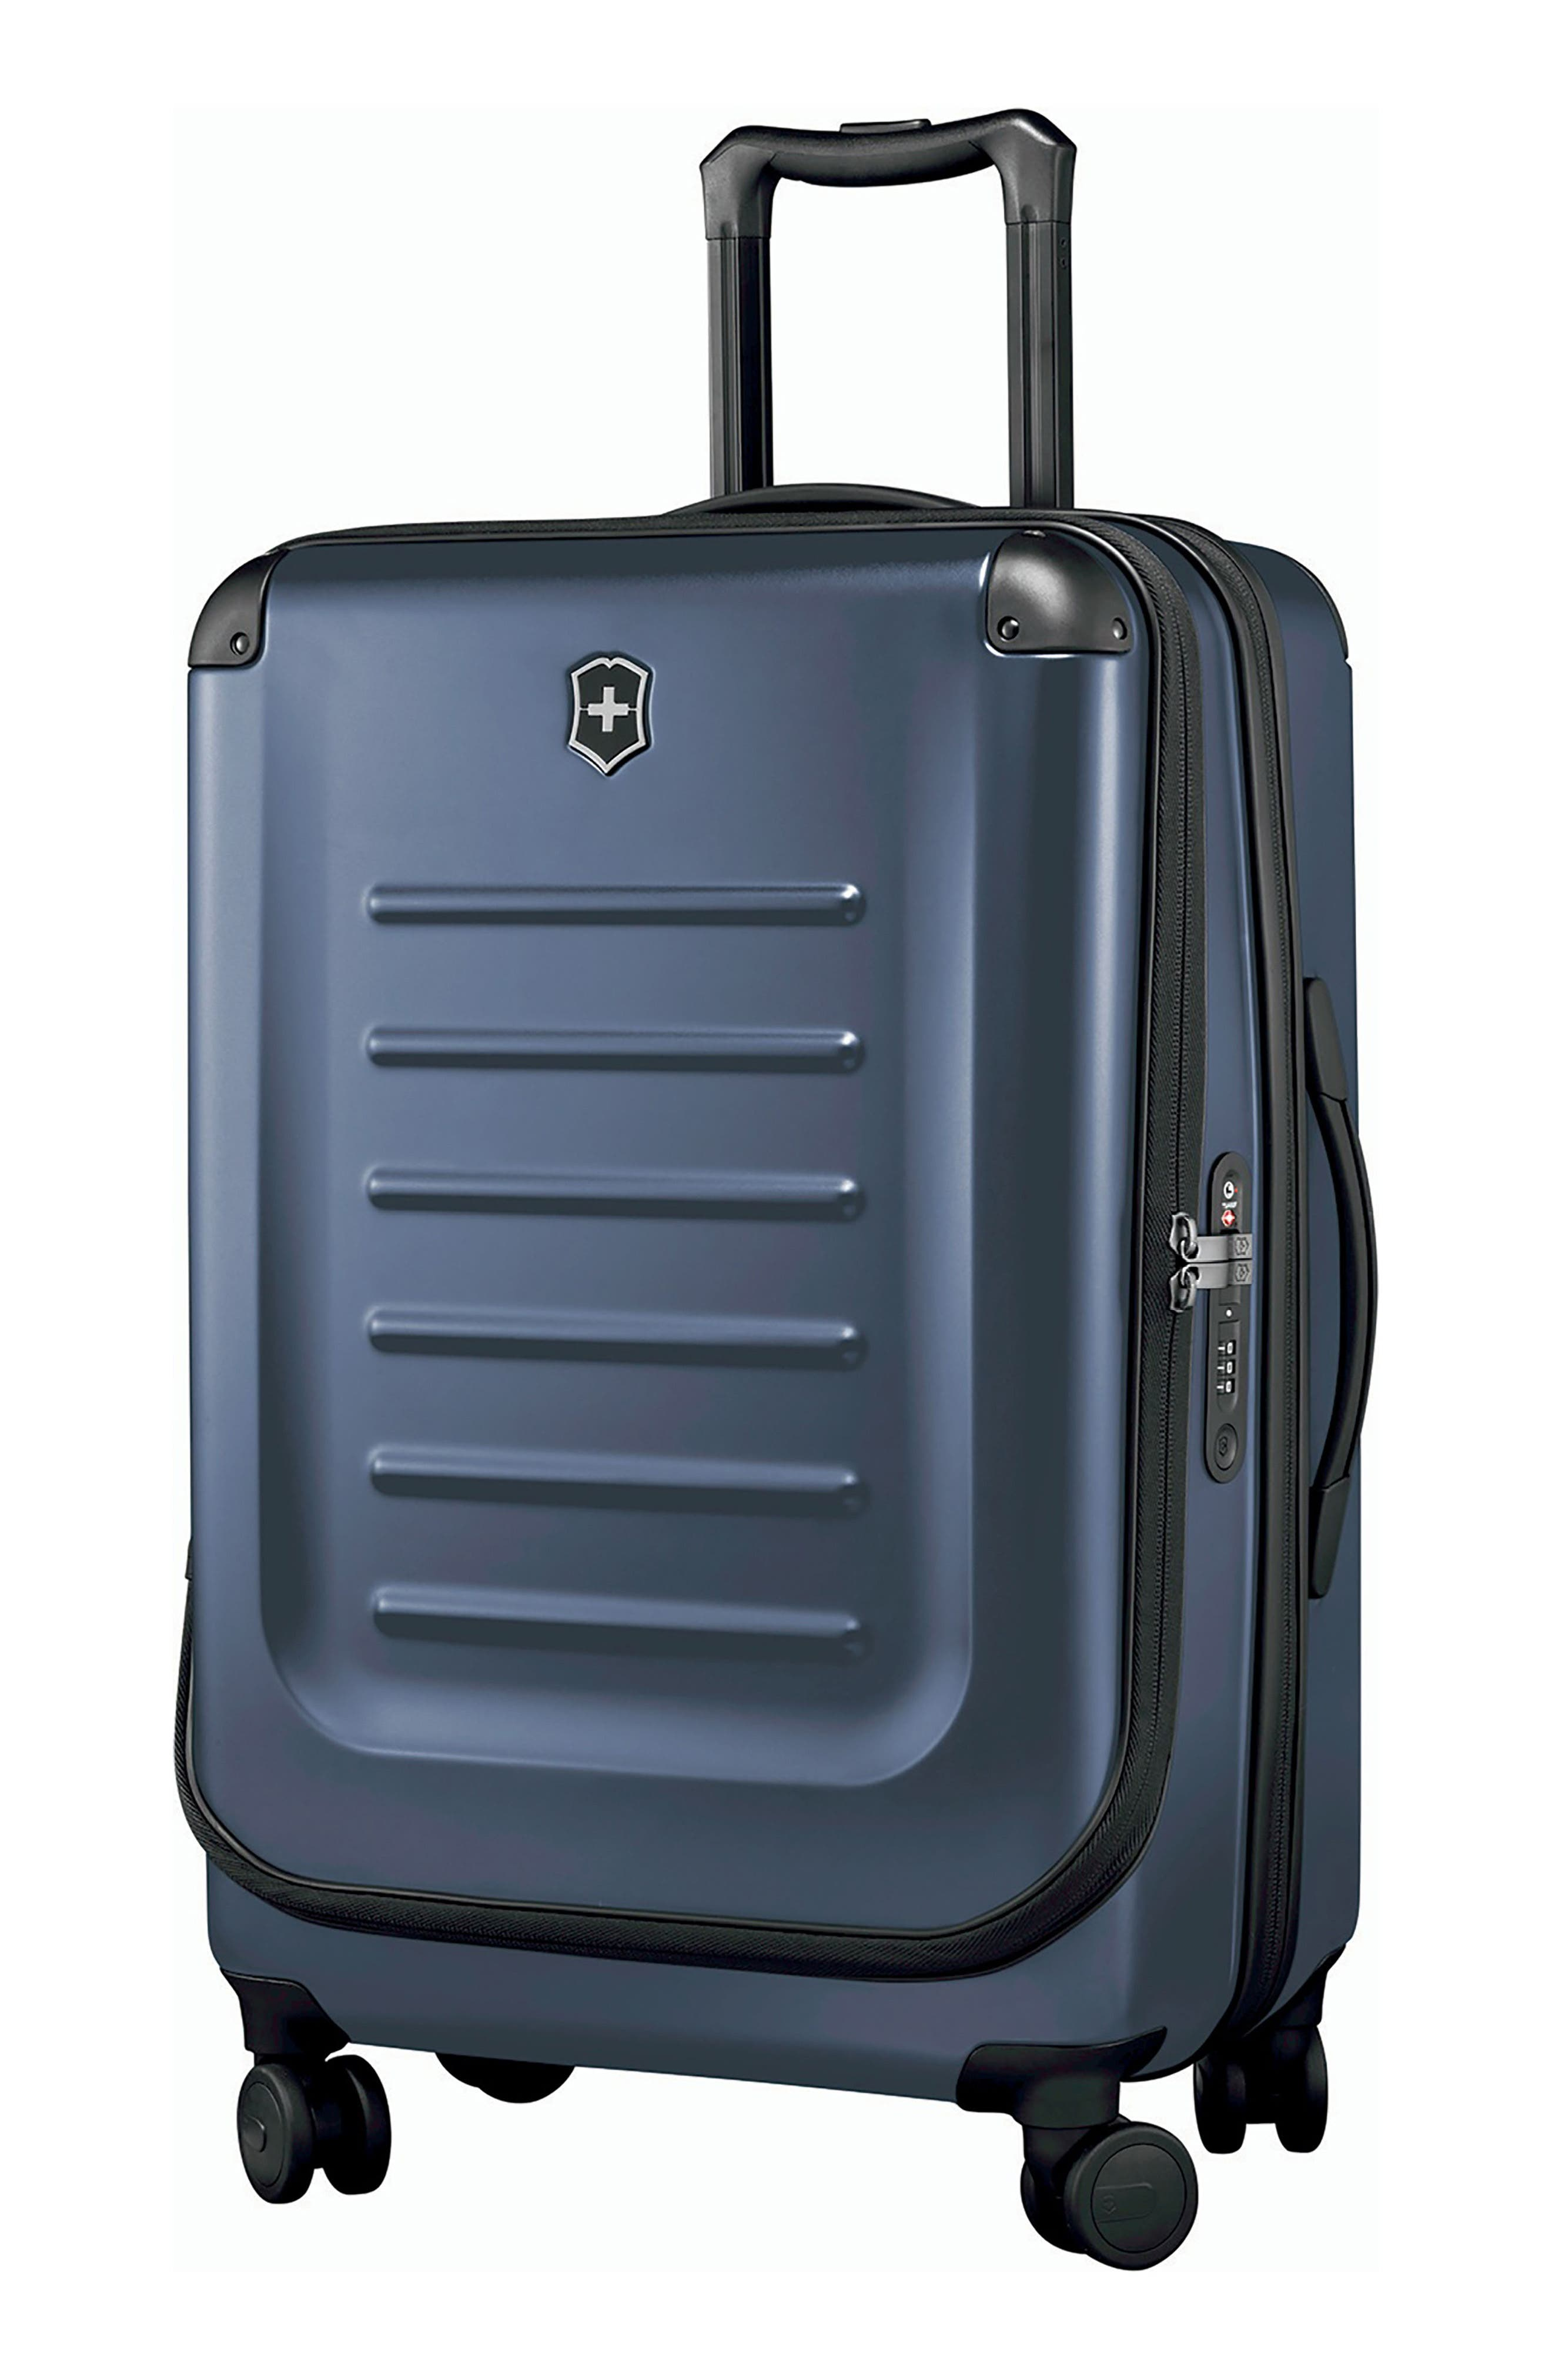 Alternate Image 1 Selected - Victorinox Swiss Army® Spectra 2.0 27 Inch Hard Sided Rolling Travel Suitcase